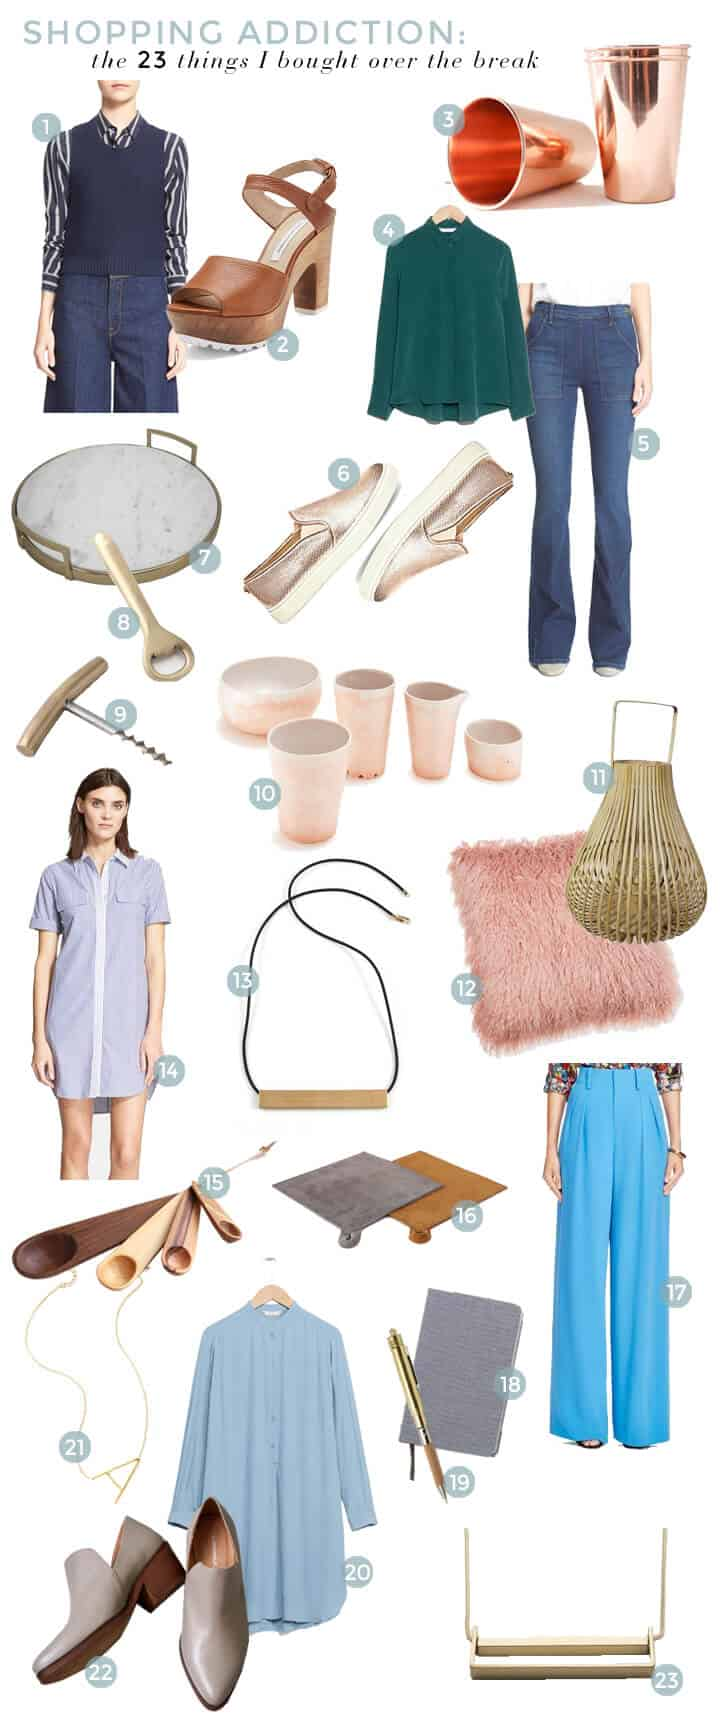 shopping addiction_what I bought over the break_gift_guide_roundup_emily henderson_